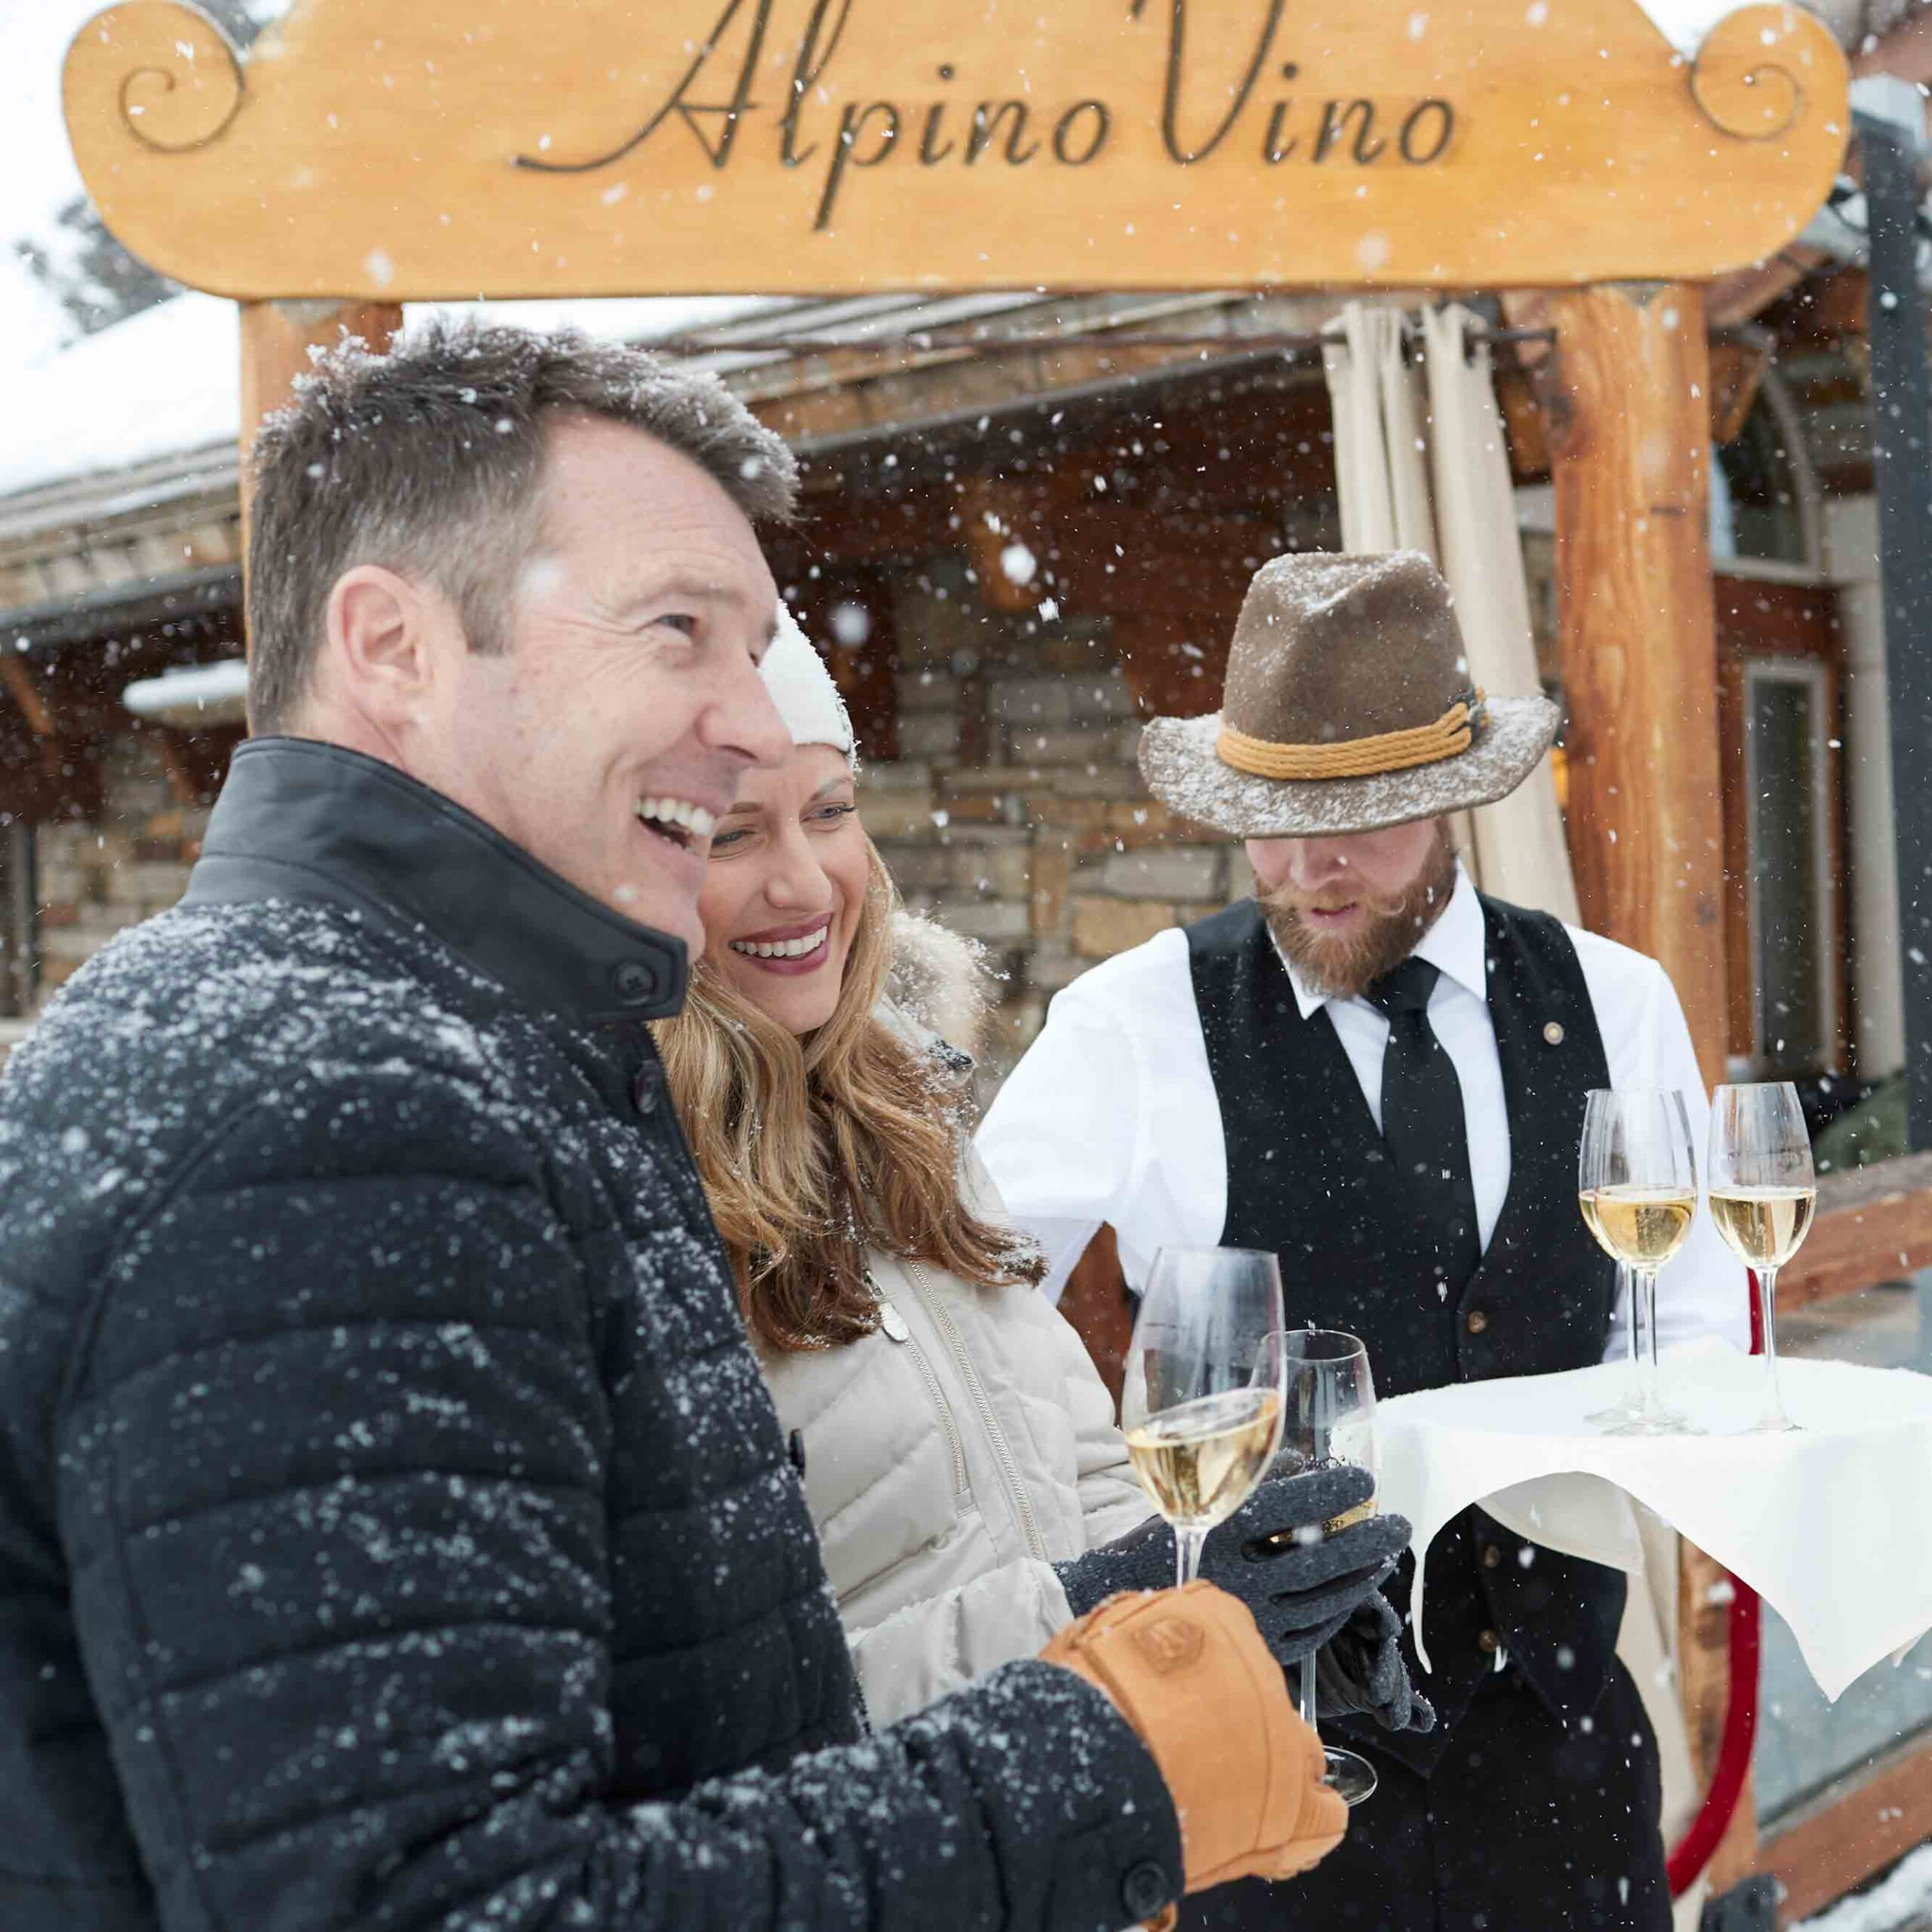 Couple with Wine at Alpino Vino